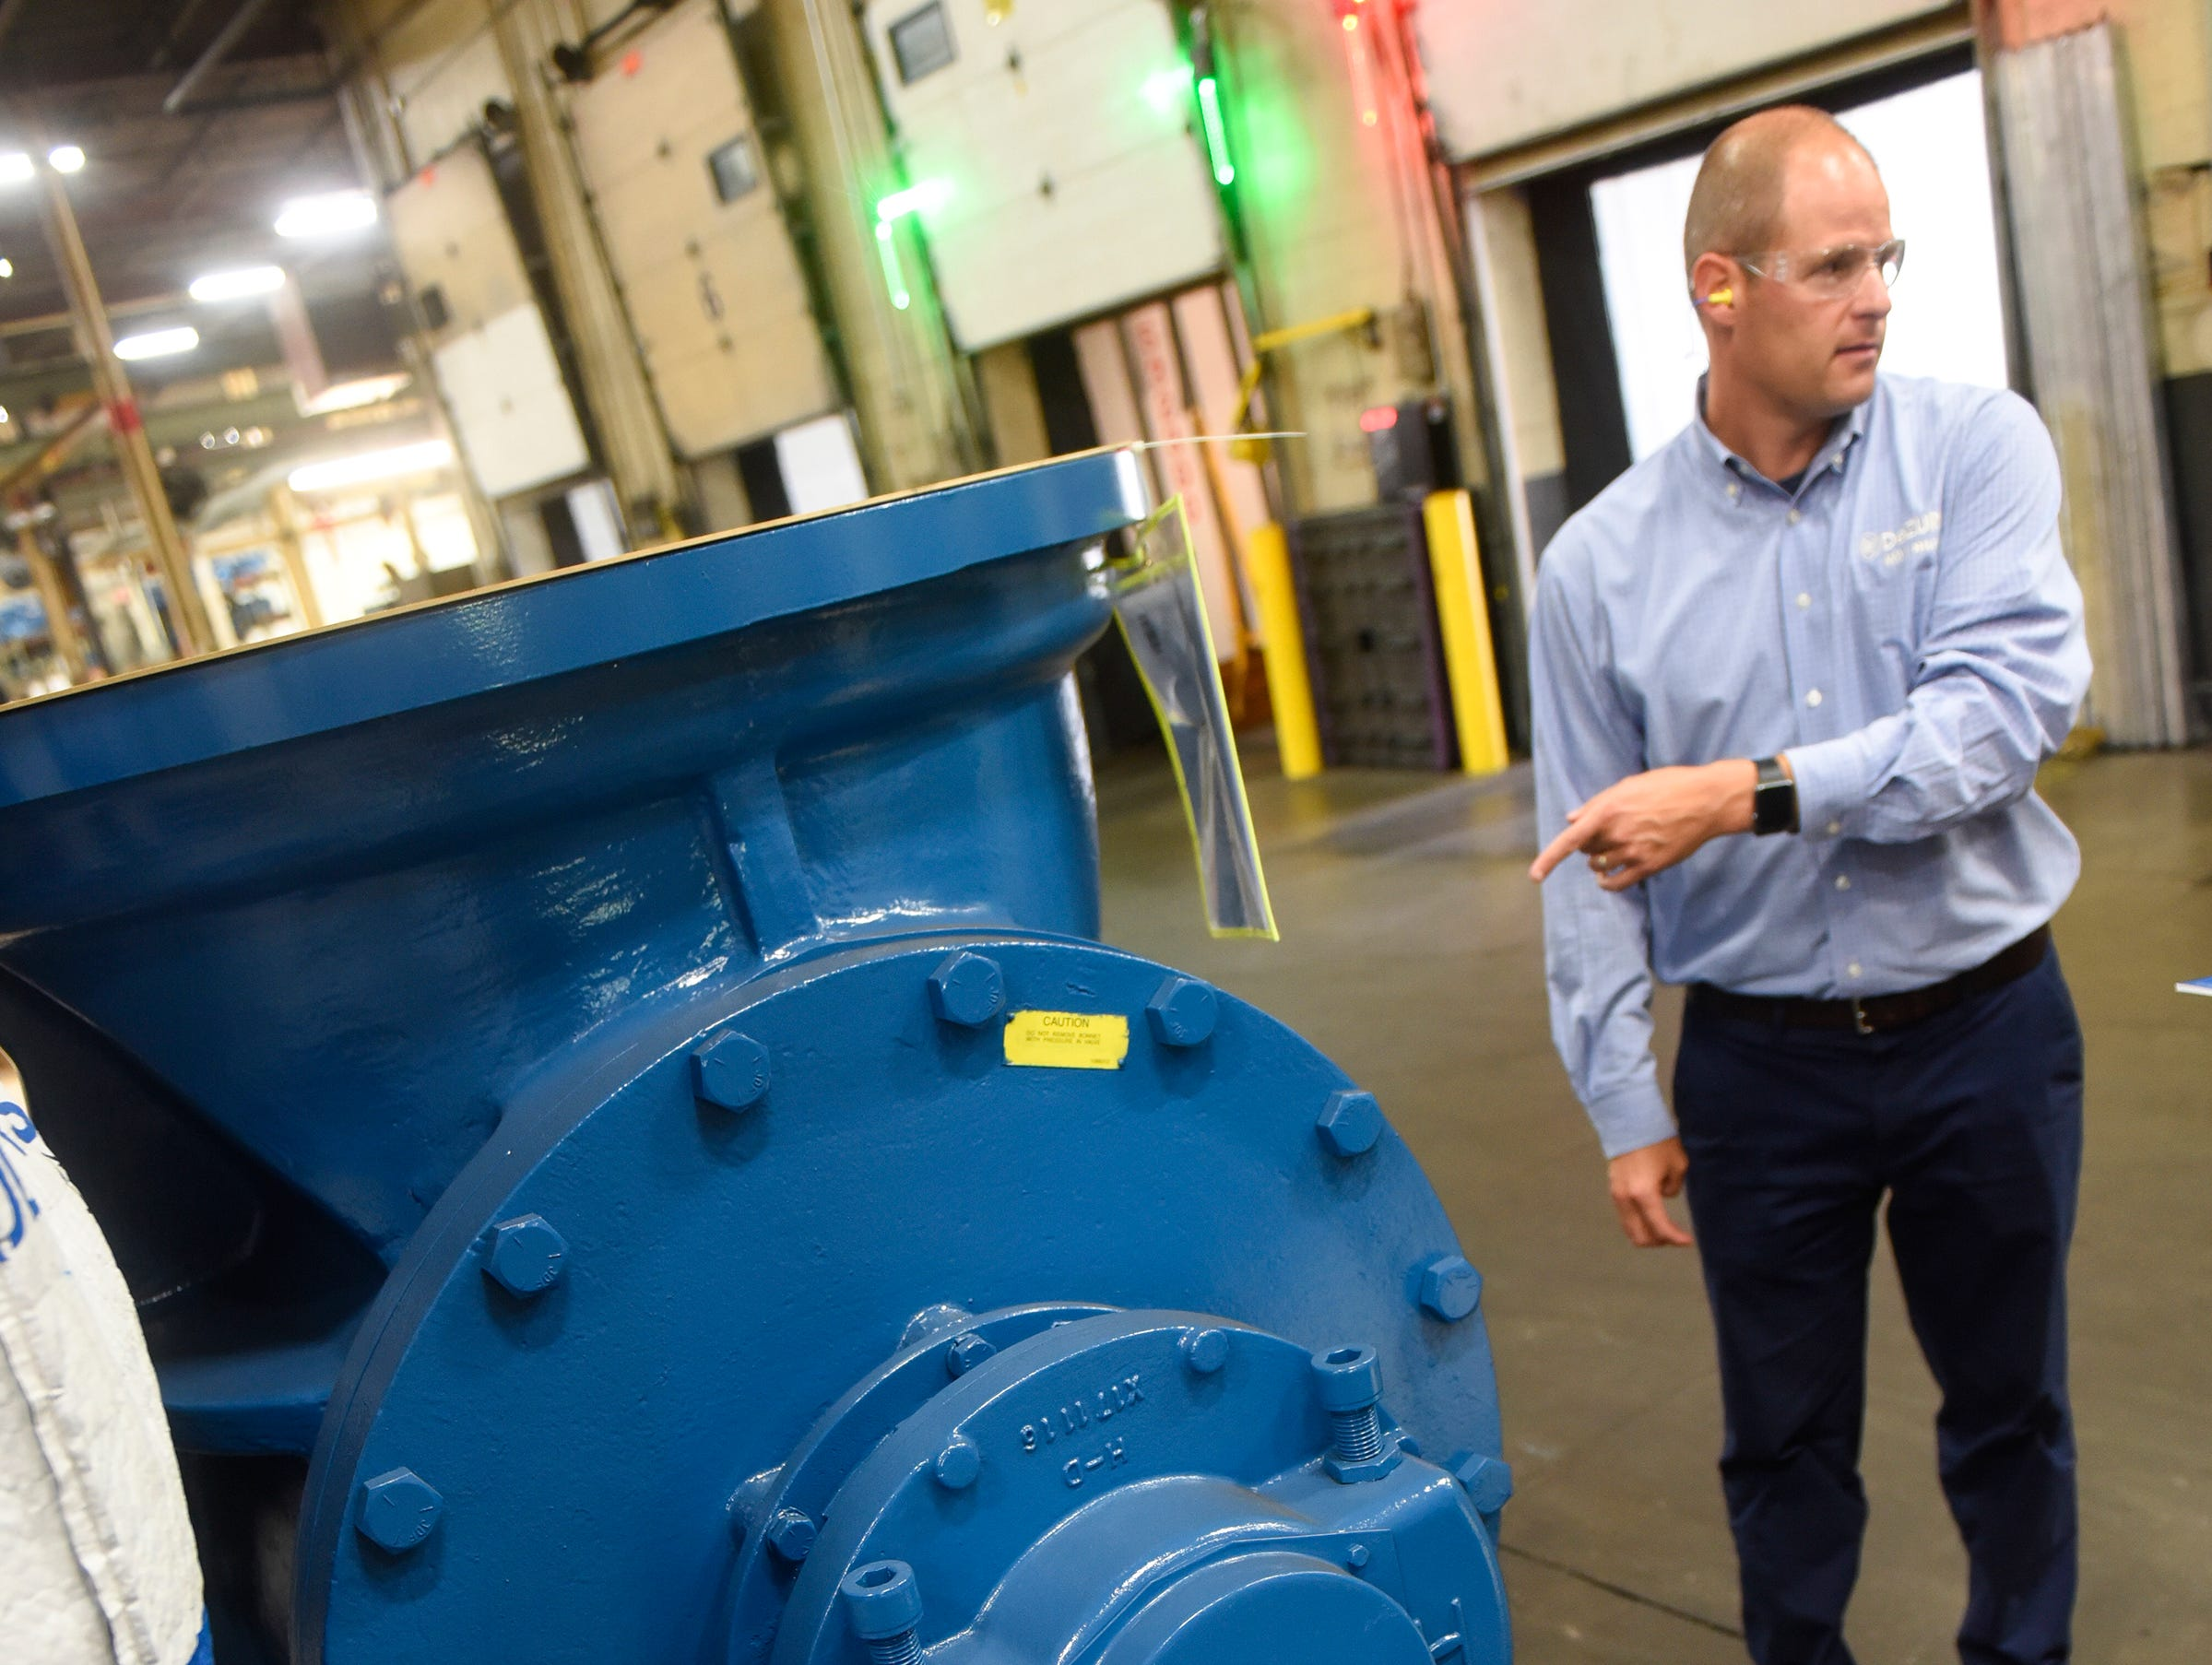 CEO and President Bryan Burns stands next to a large valve on the manufacturing shop floor Monday, Sept. 10, at the DeZURIK plant in Sartell.